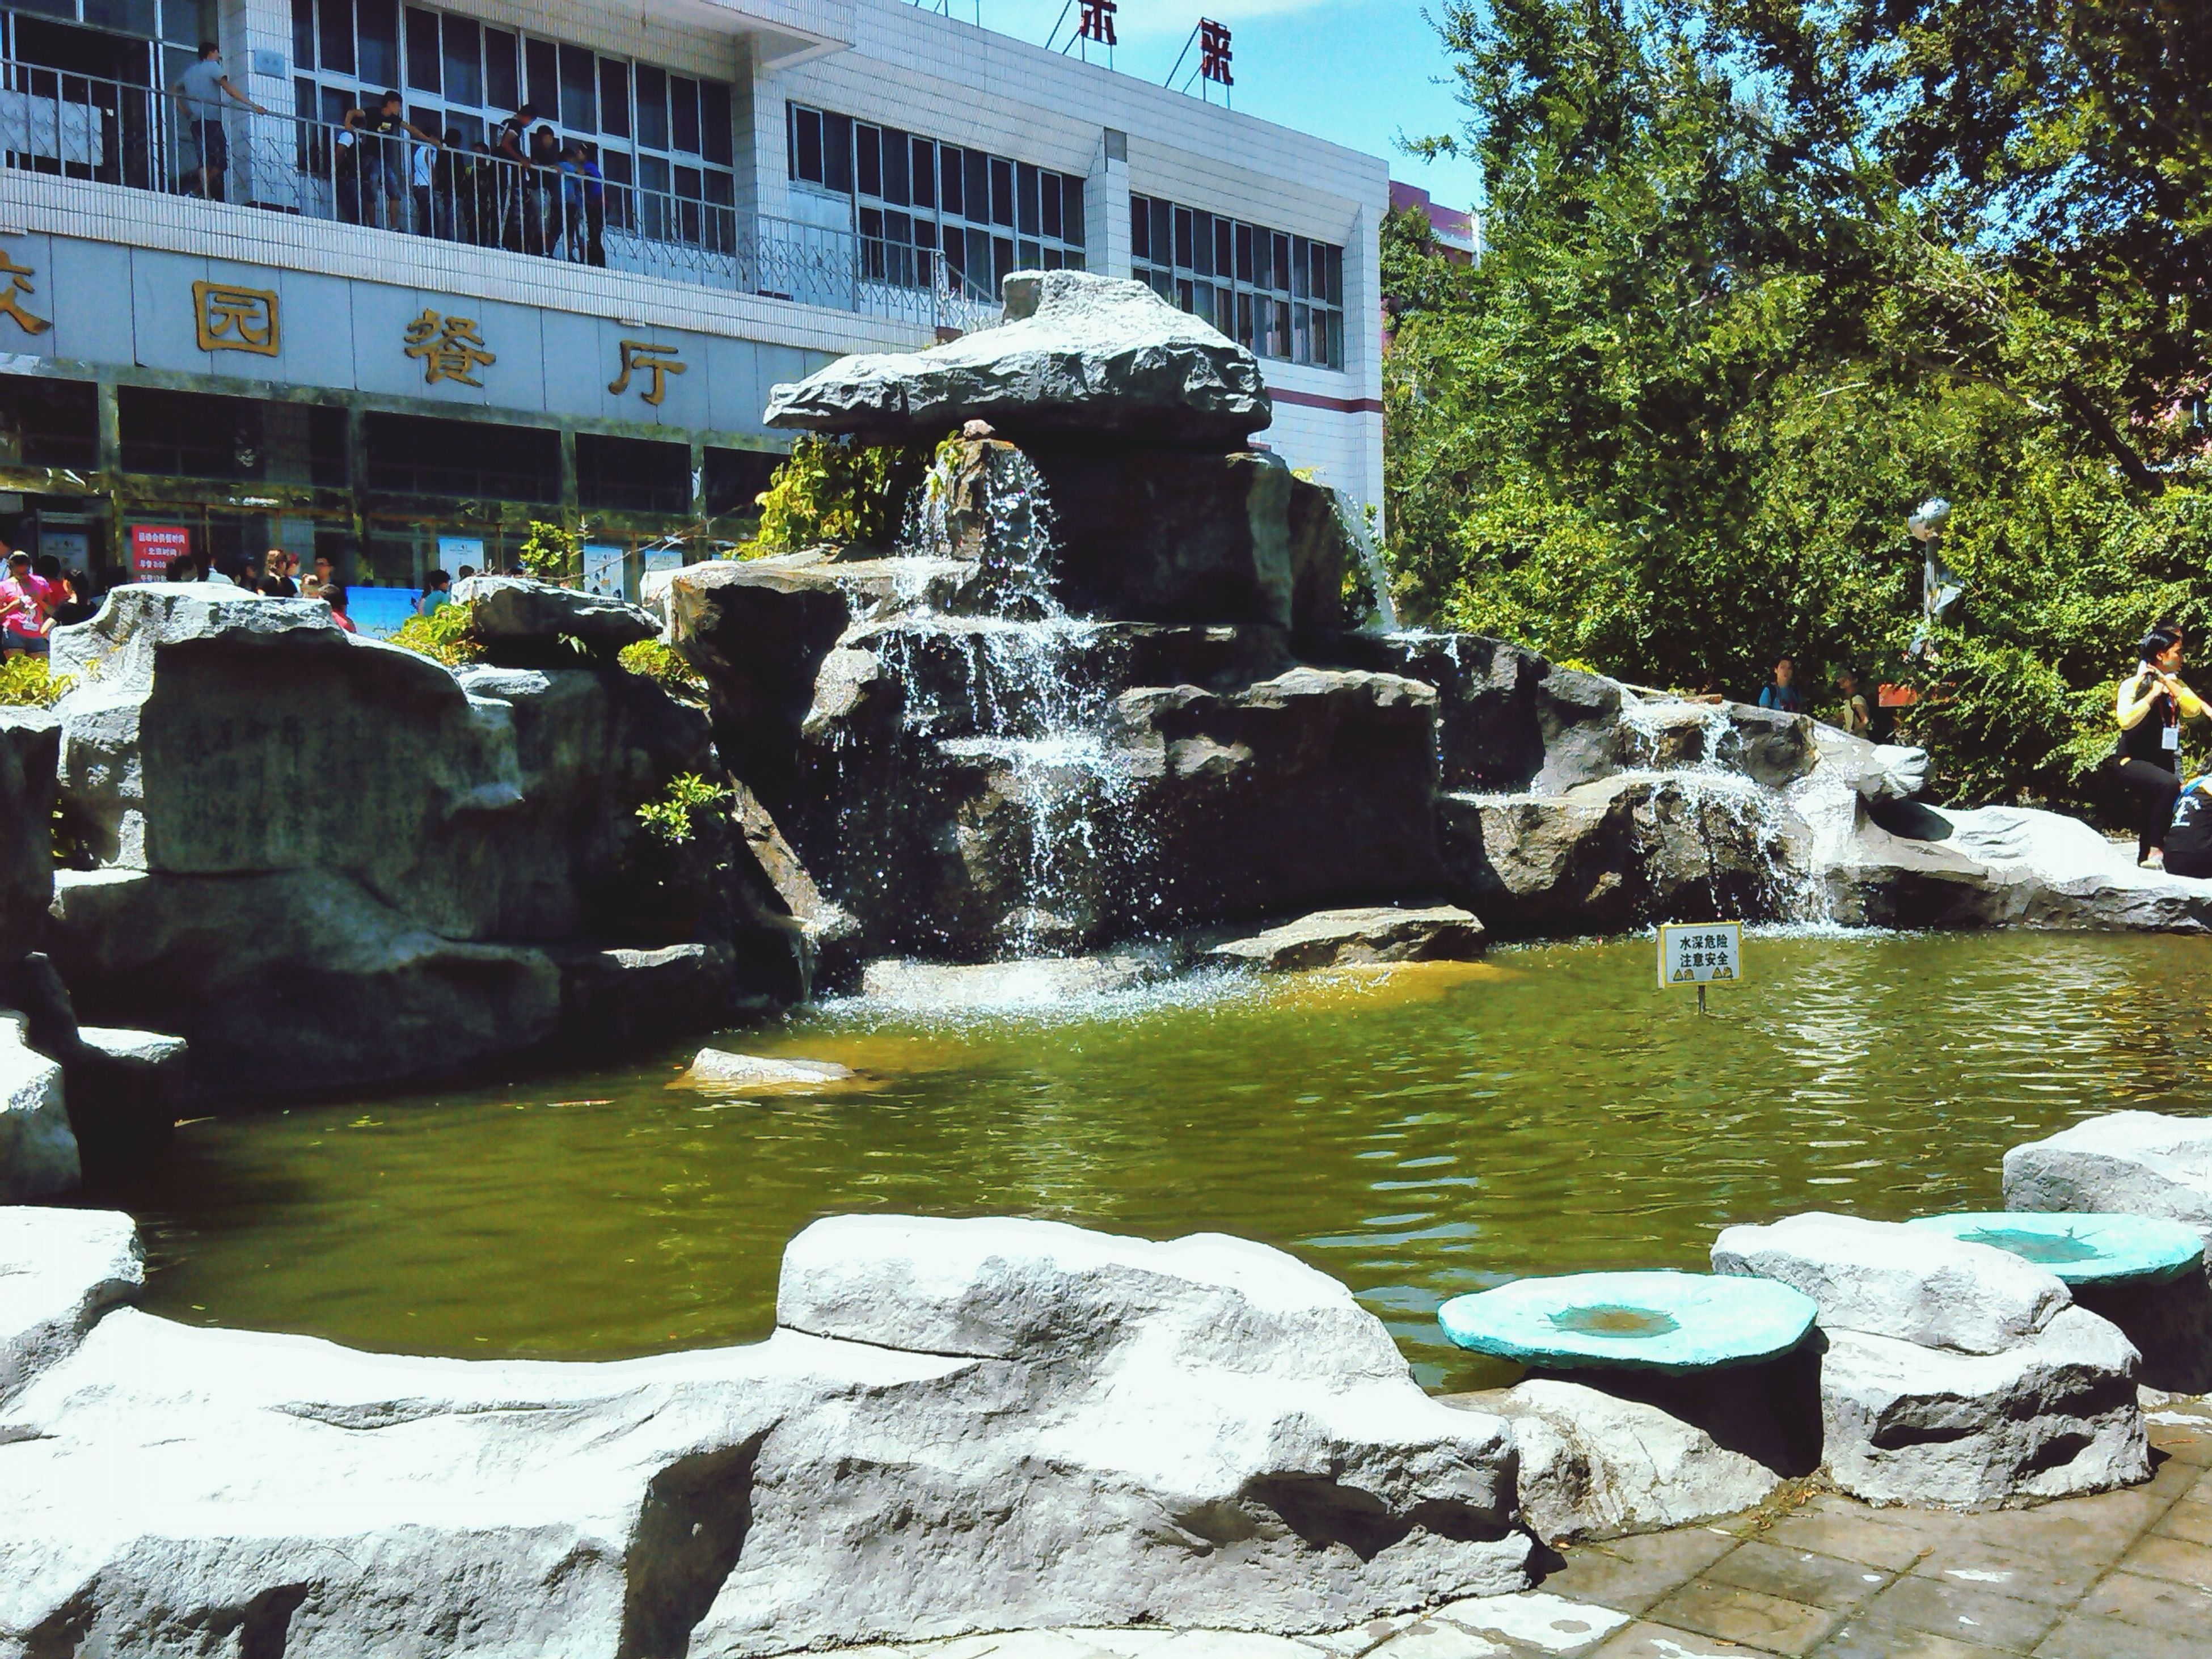 water, fountain, tree, built structure, sculpture, statue, architecture, flowing water, rock - object, park - man made space, incidental people, art and craft, flowing, motion, nature, art, human representation, building exterior, pond, day